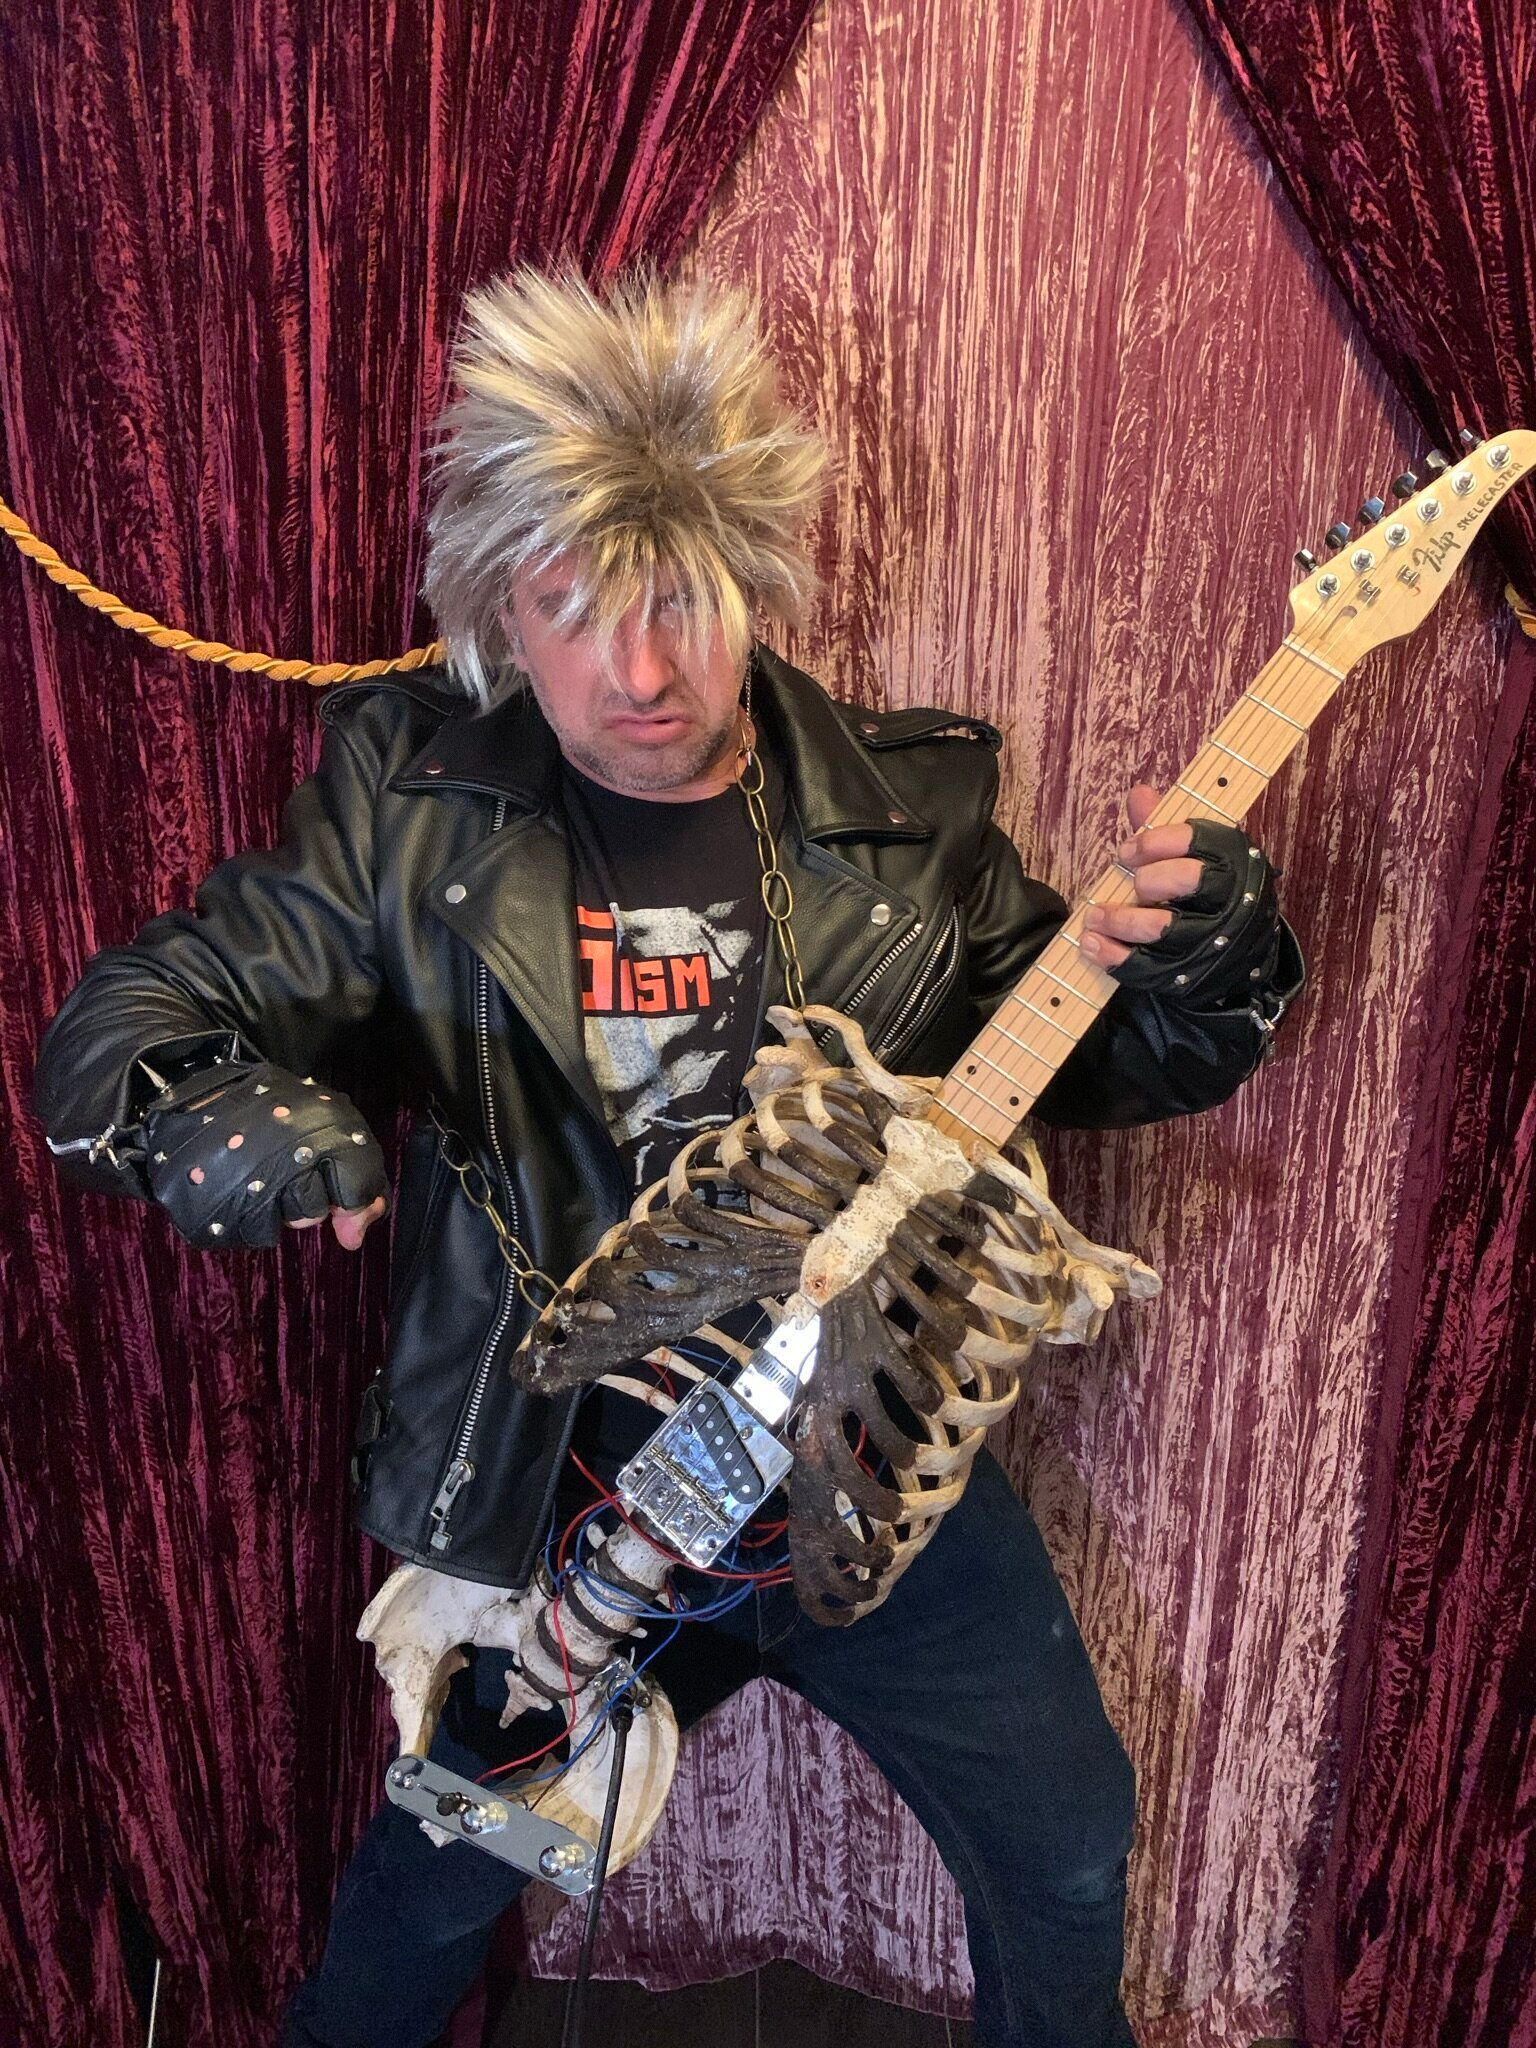 Florida-based musician Prince Midnight shows off his guitar made from his Uncle Filip's bones.